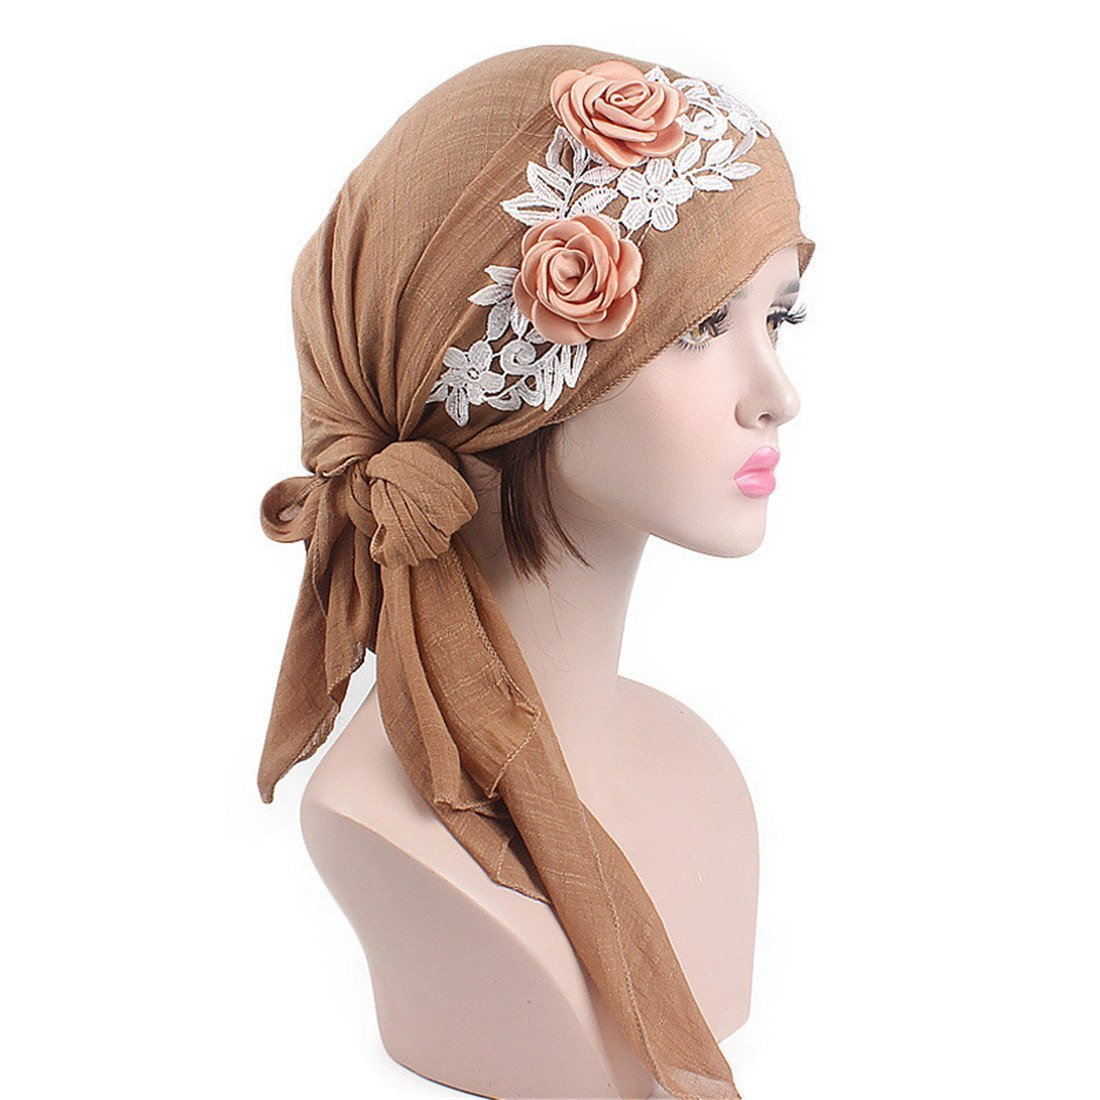 Qhome Women Pre-Tied Cotton Bandana Turban 3D Flower Lace Head Scarf Chemo Hair Cover Hat Headwraps Cancer Hats